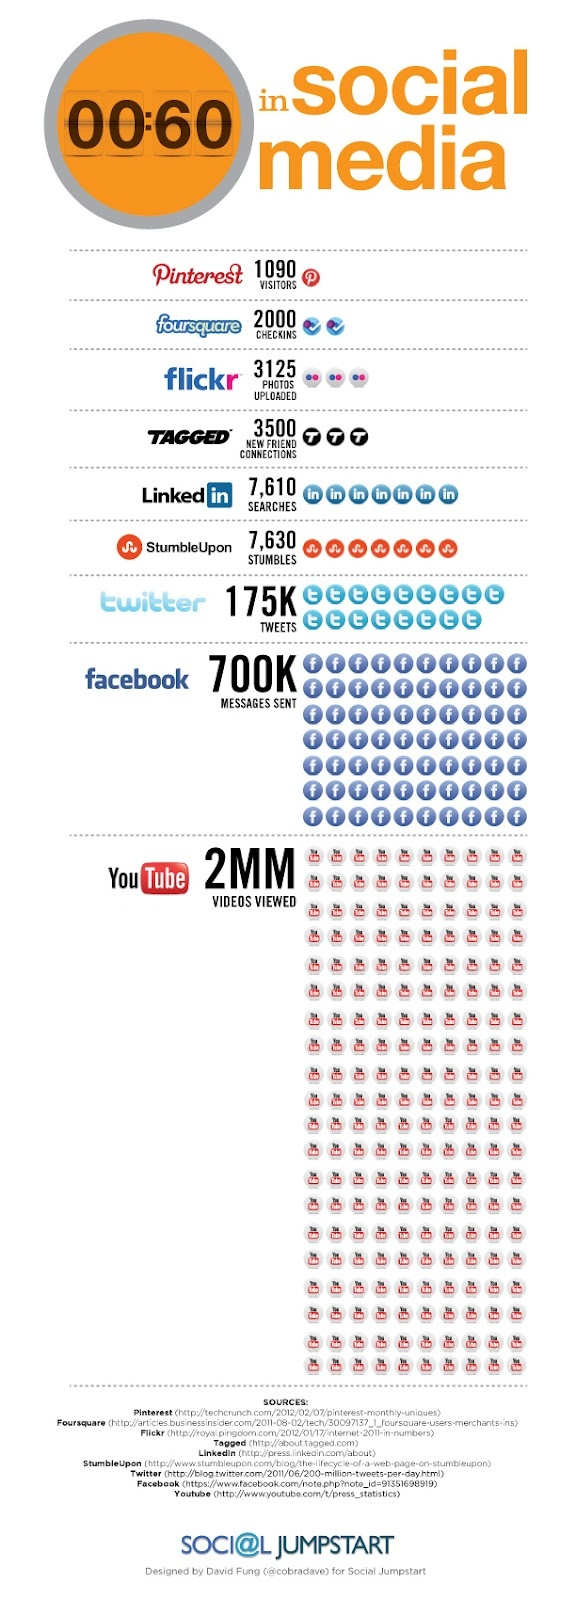 Every 60 seconds in social media60Second, Social Network, 60 Segundo, Social Media, 60 Second, Networks, Media Infographic, Social Networks, Socialmedia